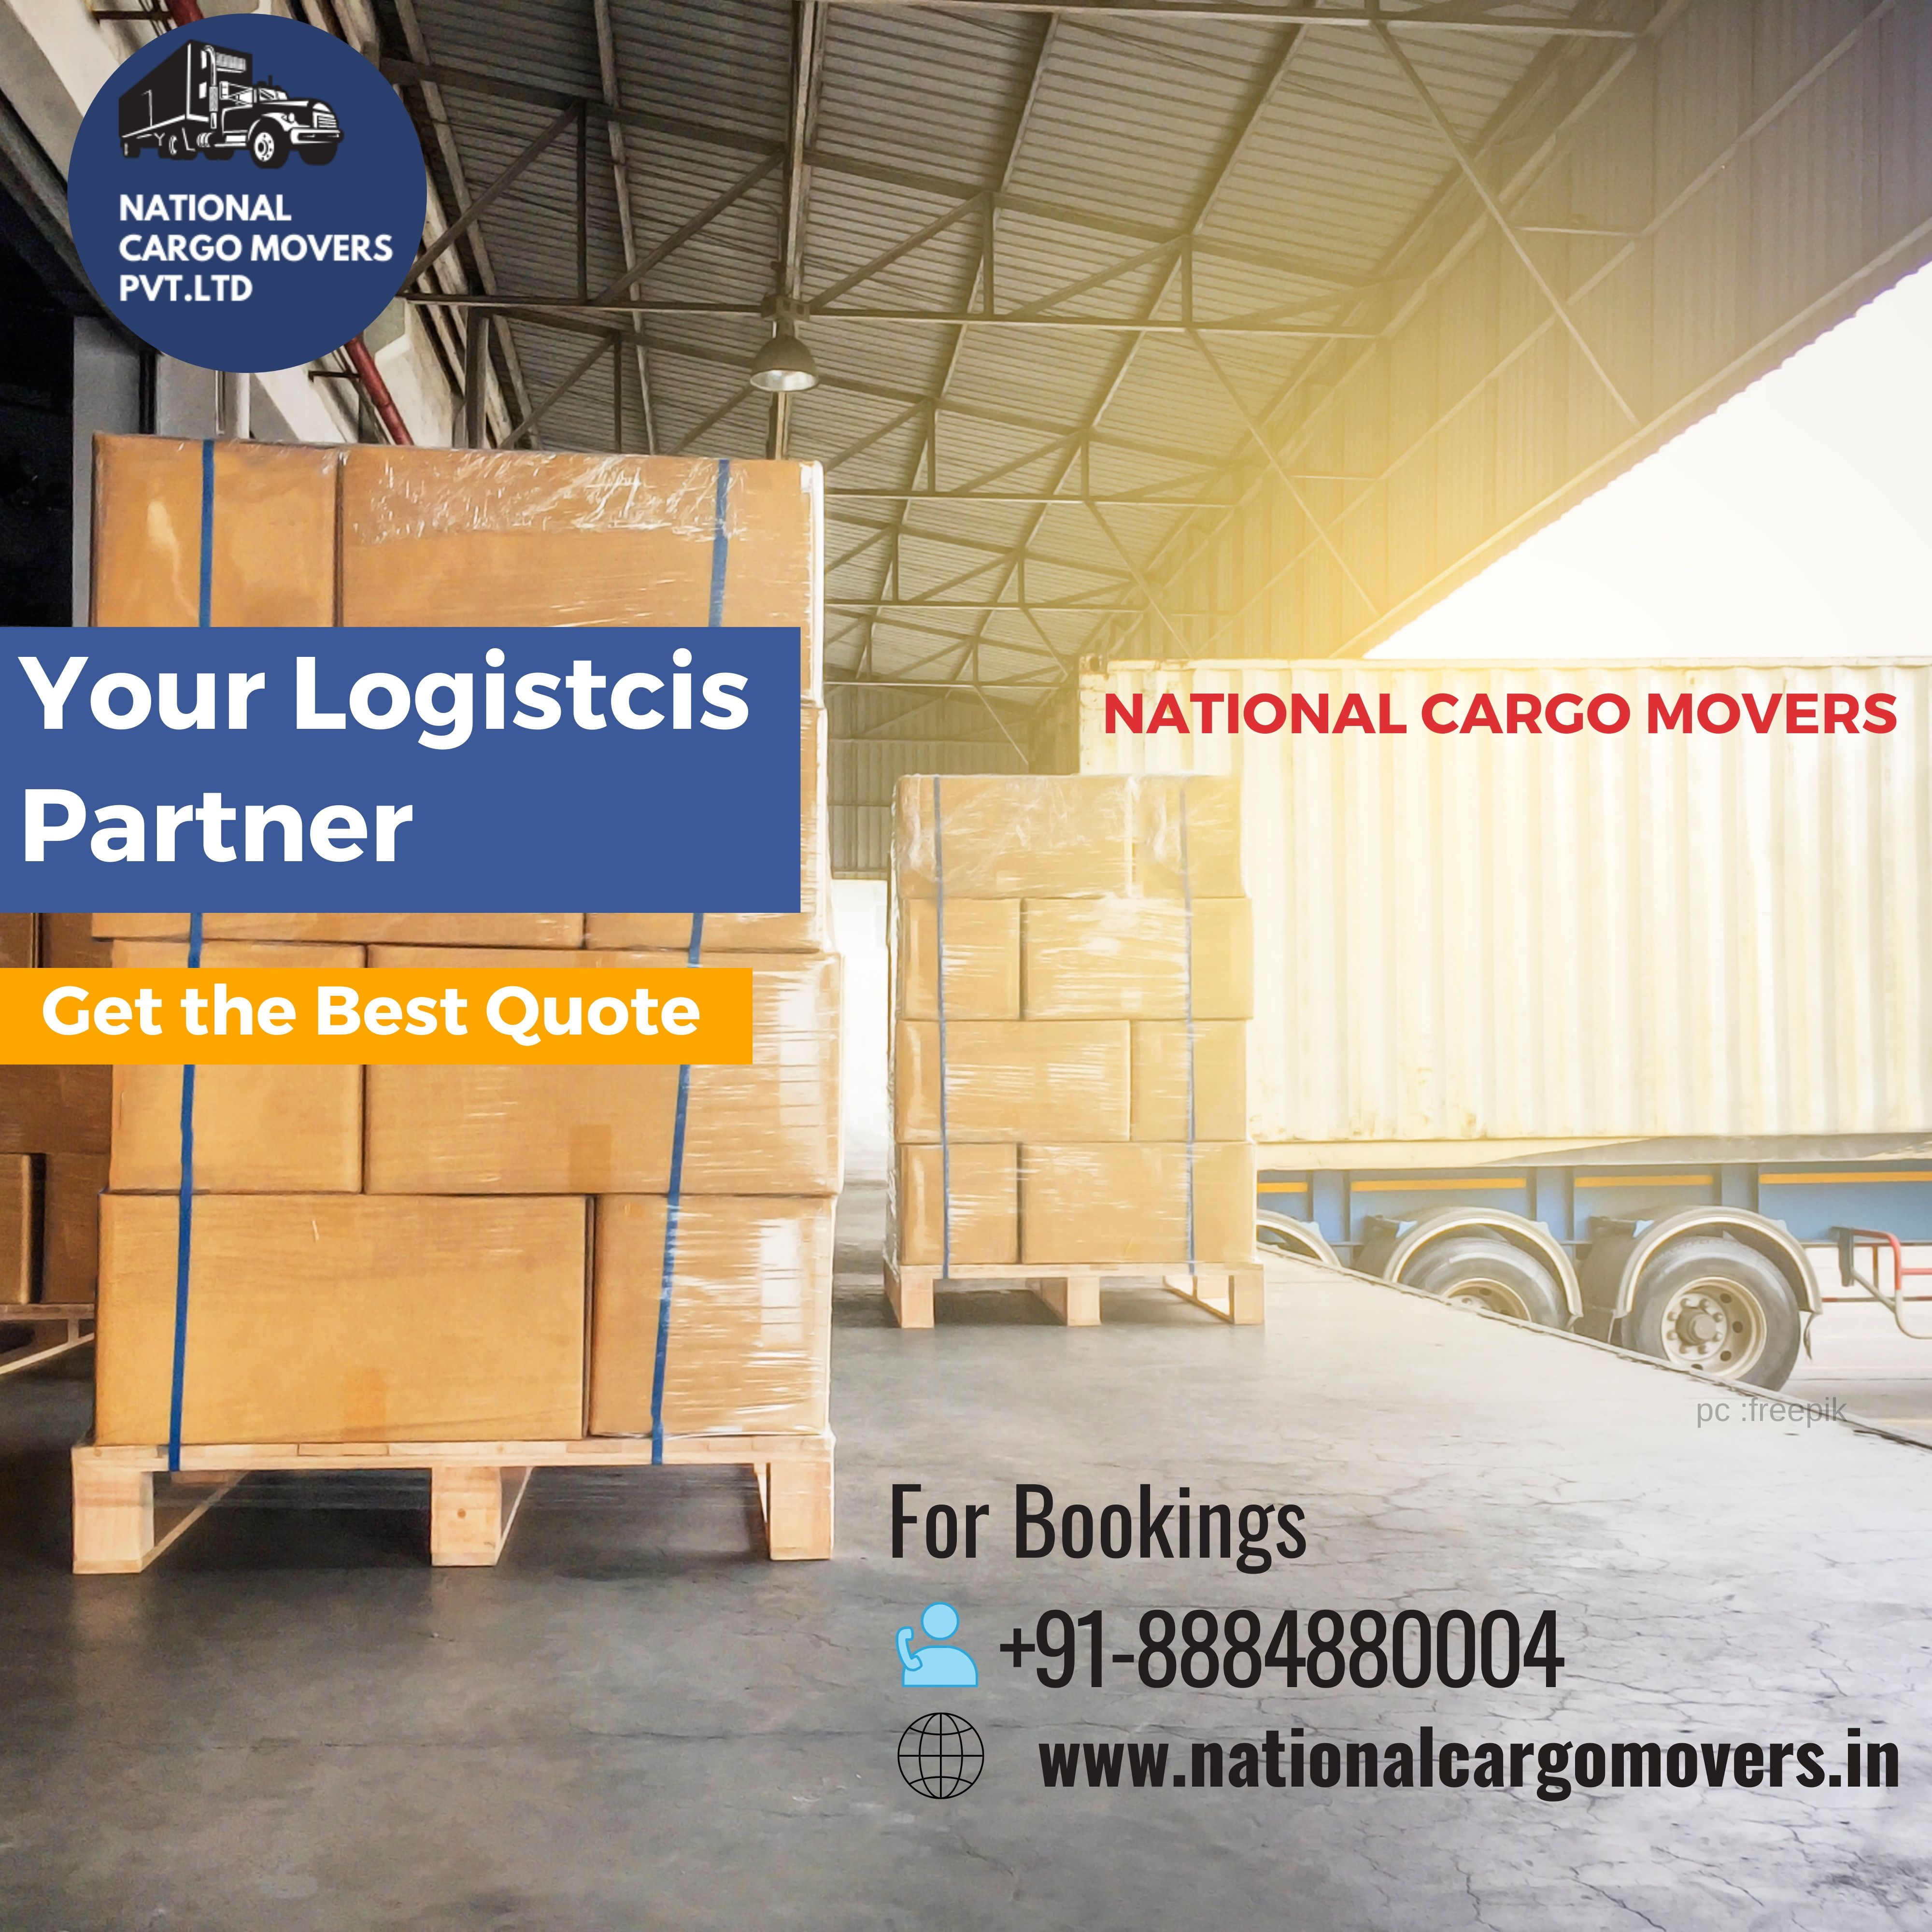 Loading and unloading services near me